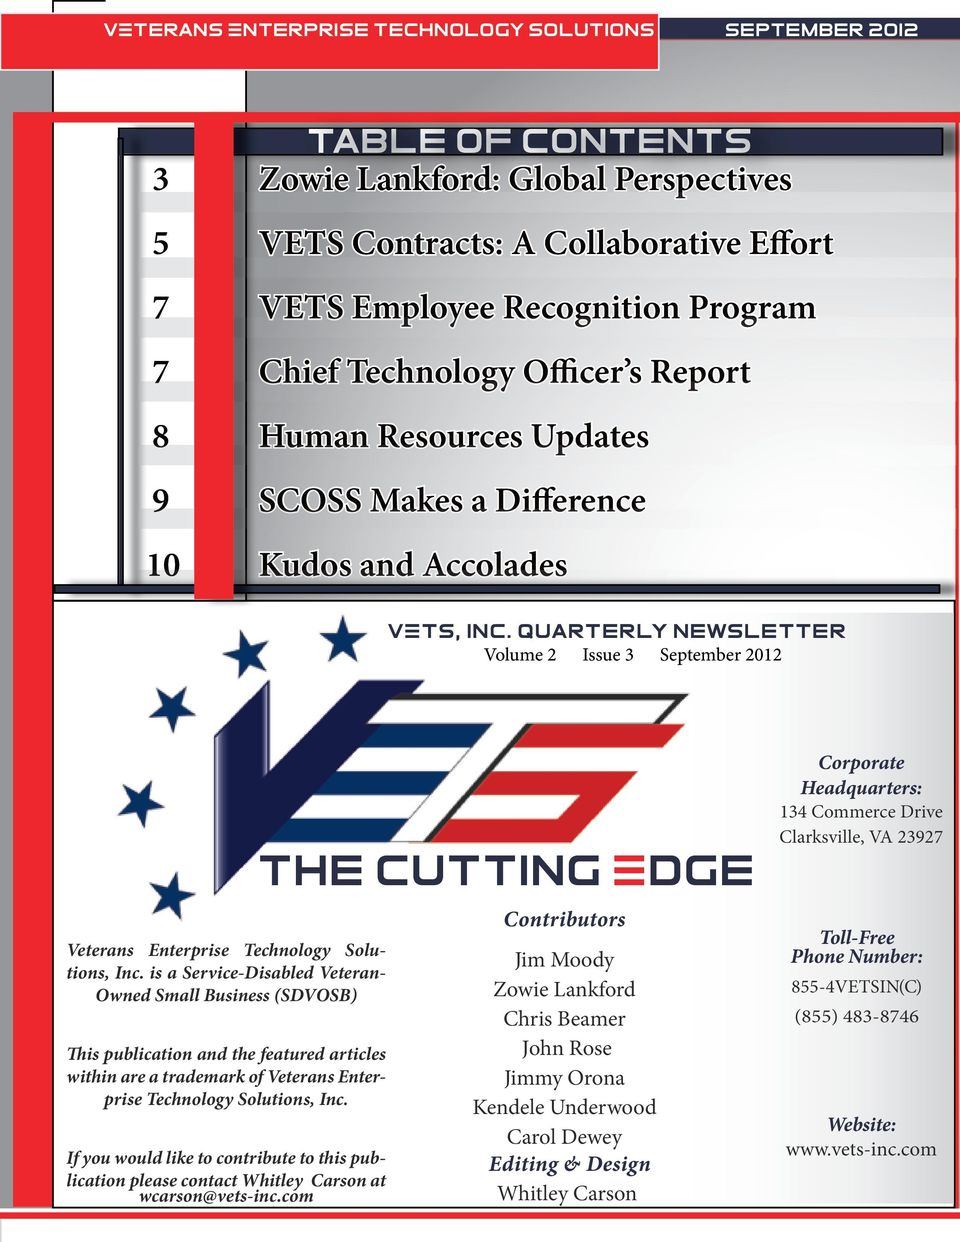 Quarterly Newsletter Volume 2 Issue 3 September 2012 Veterans Enterprise Technology Solutions, Inc.